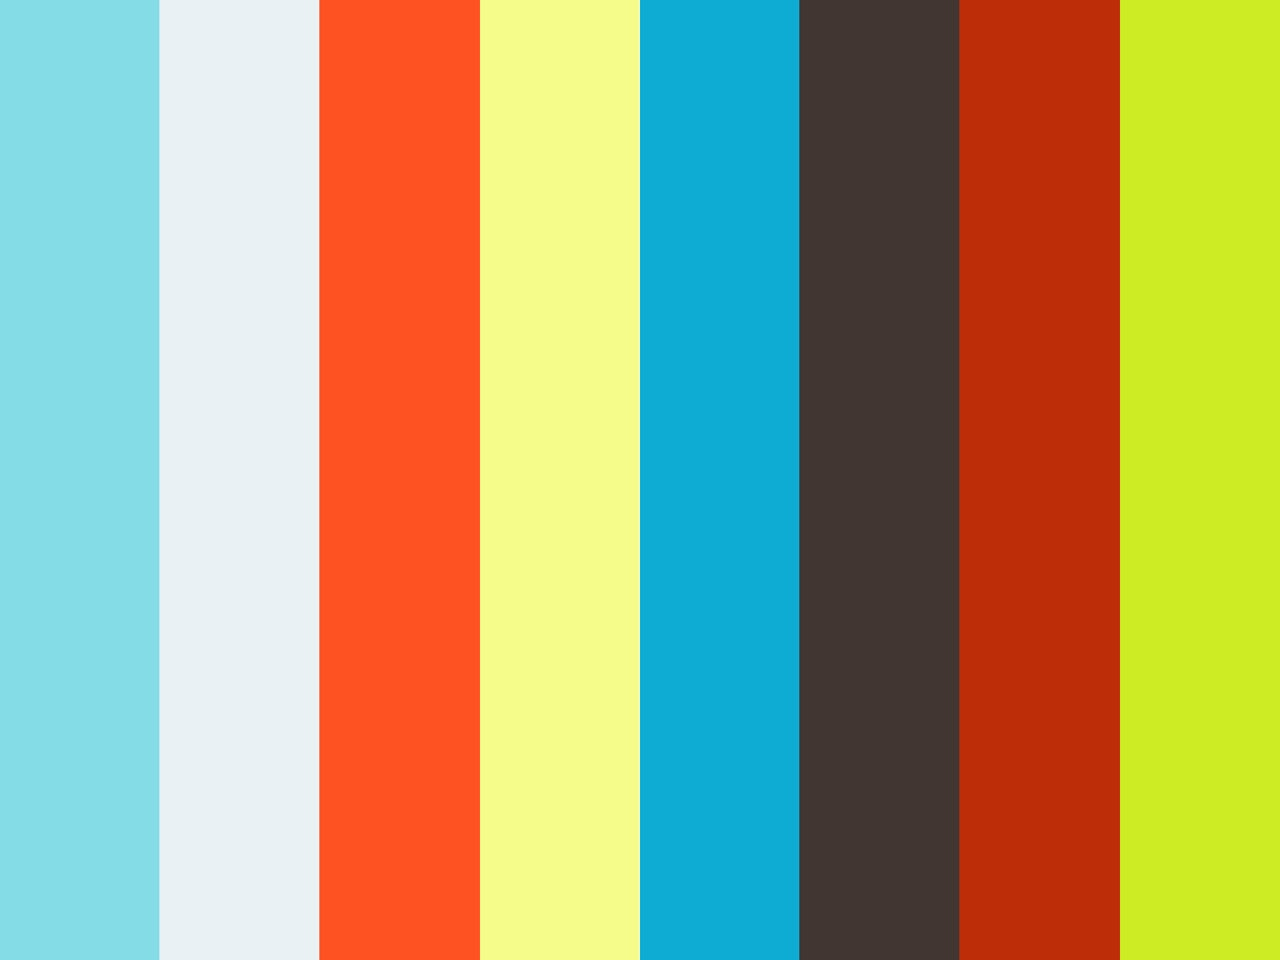 The Betrayal by Technology: A Portrait of Jacques Ellul